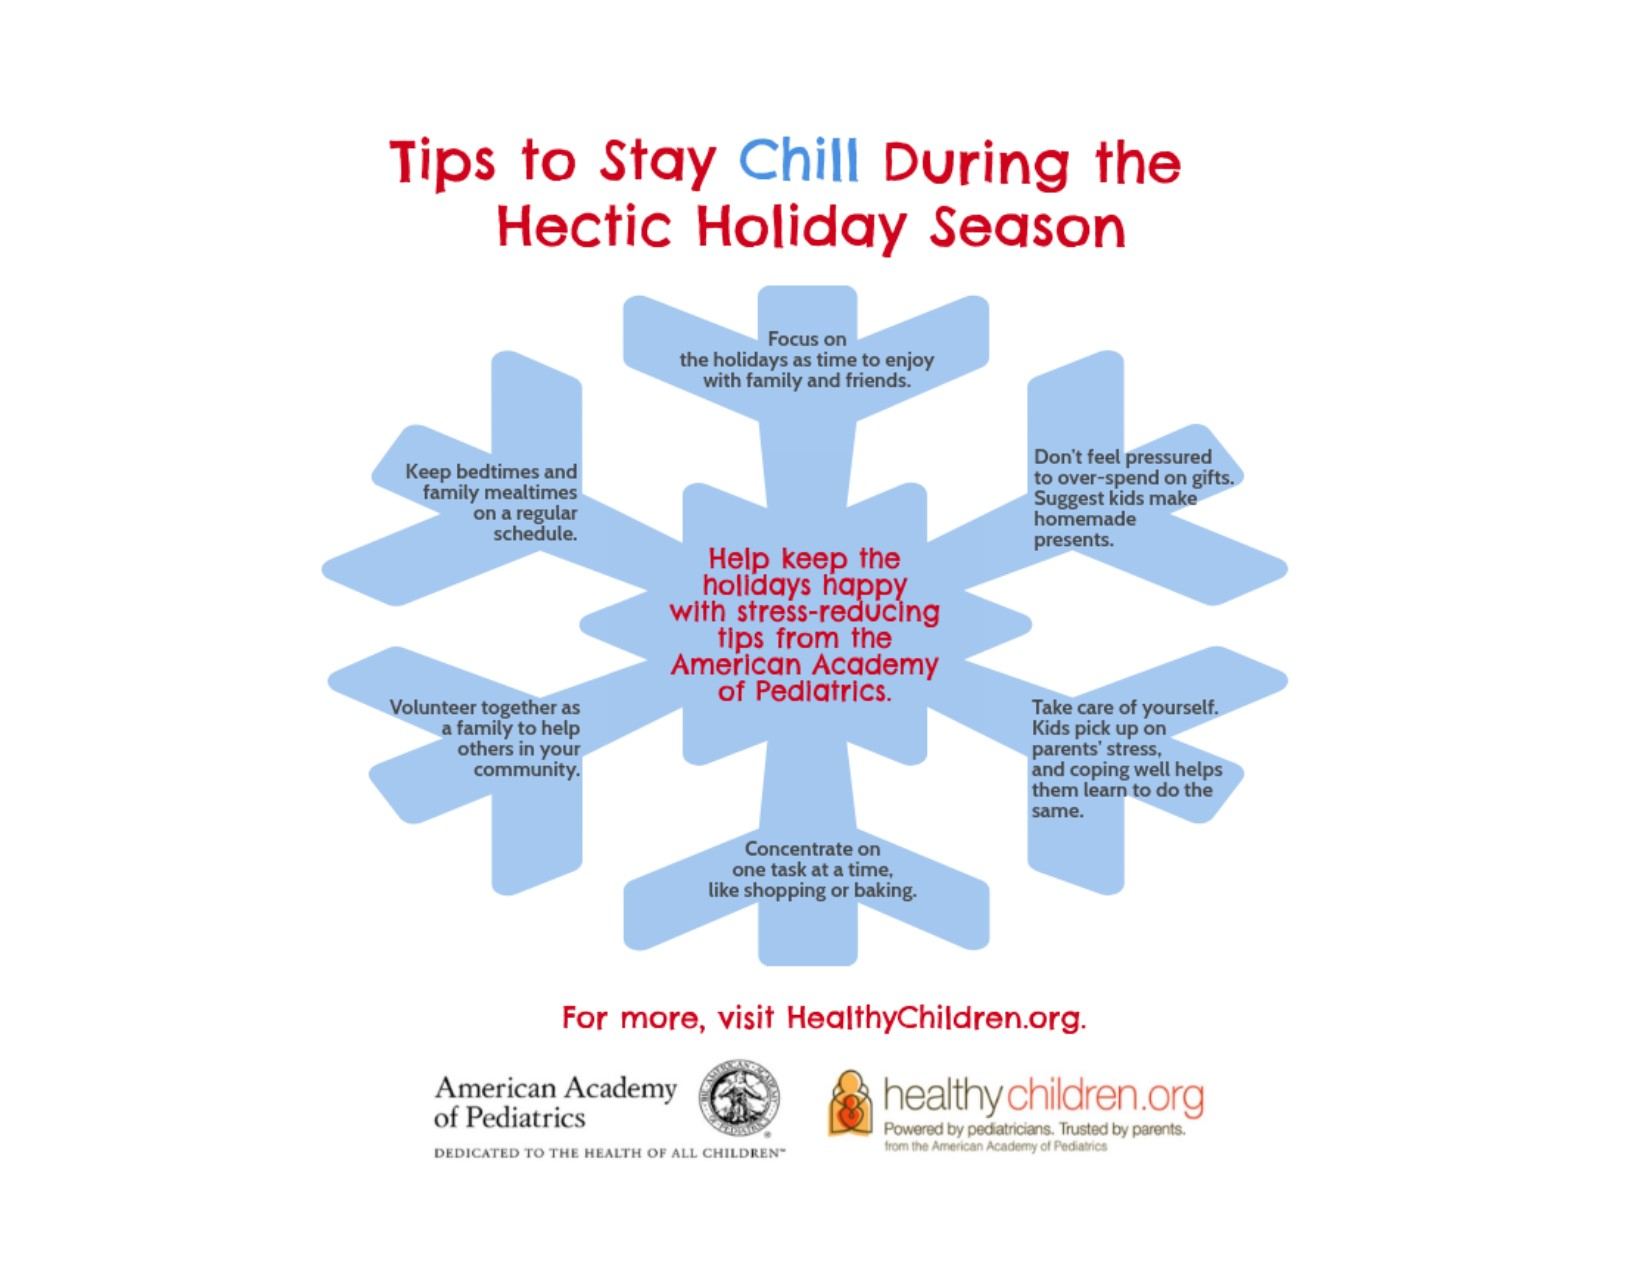 https://www.healthychildren.org/SiteCollectionImagesArticleImages/Holiday%20Stress%20Tips%20Infographic%20lma%20ssm.jpg